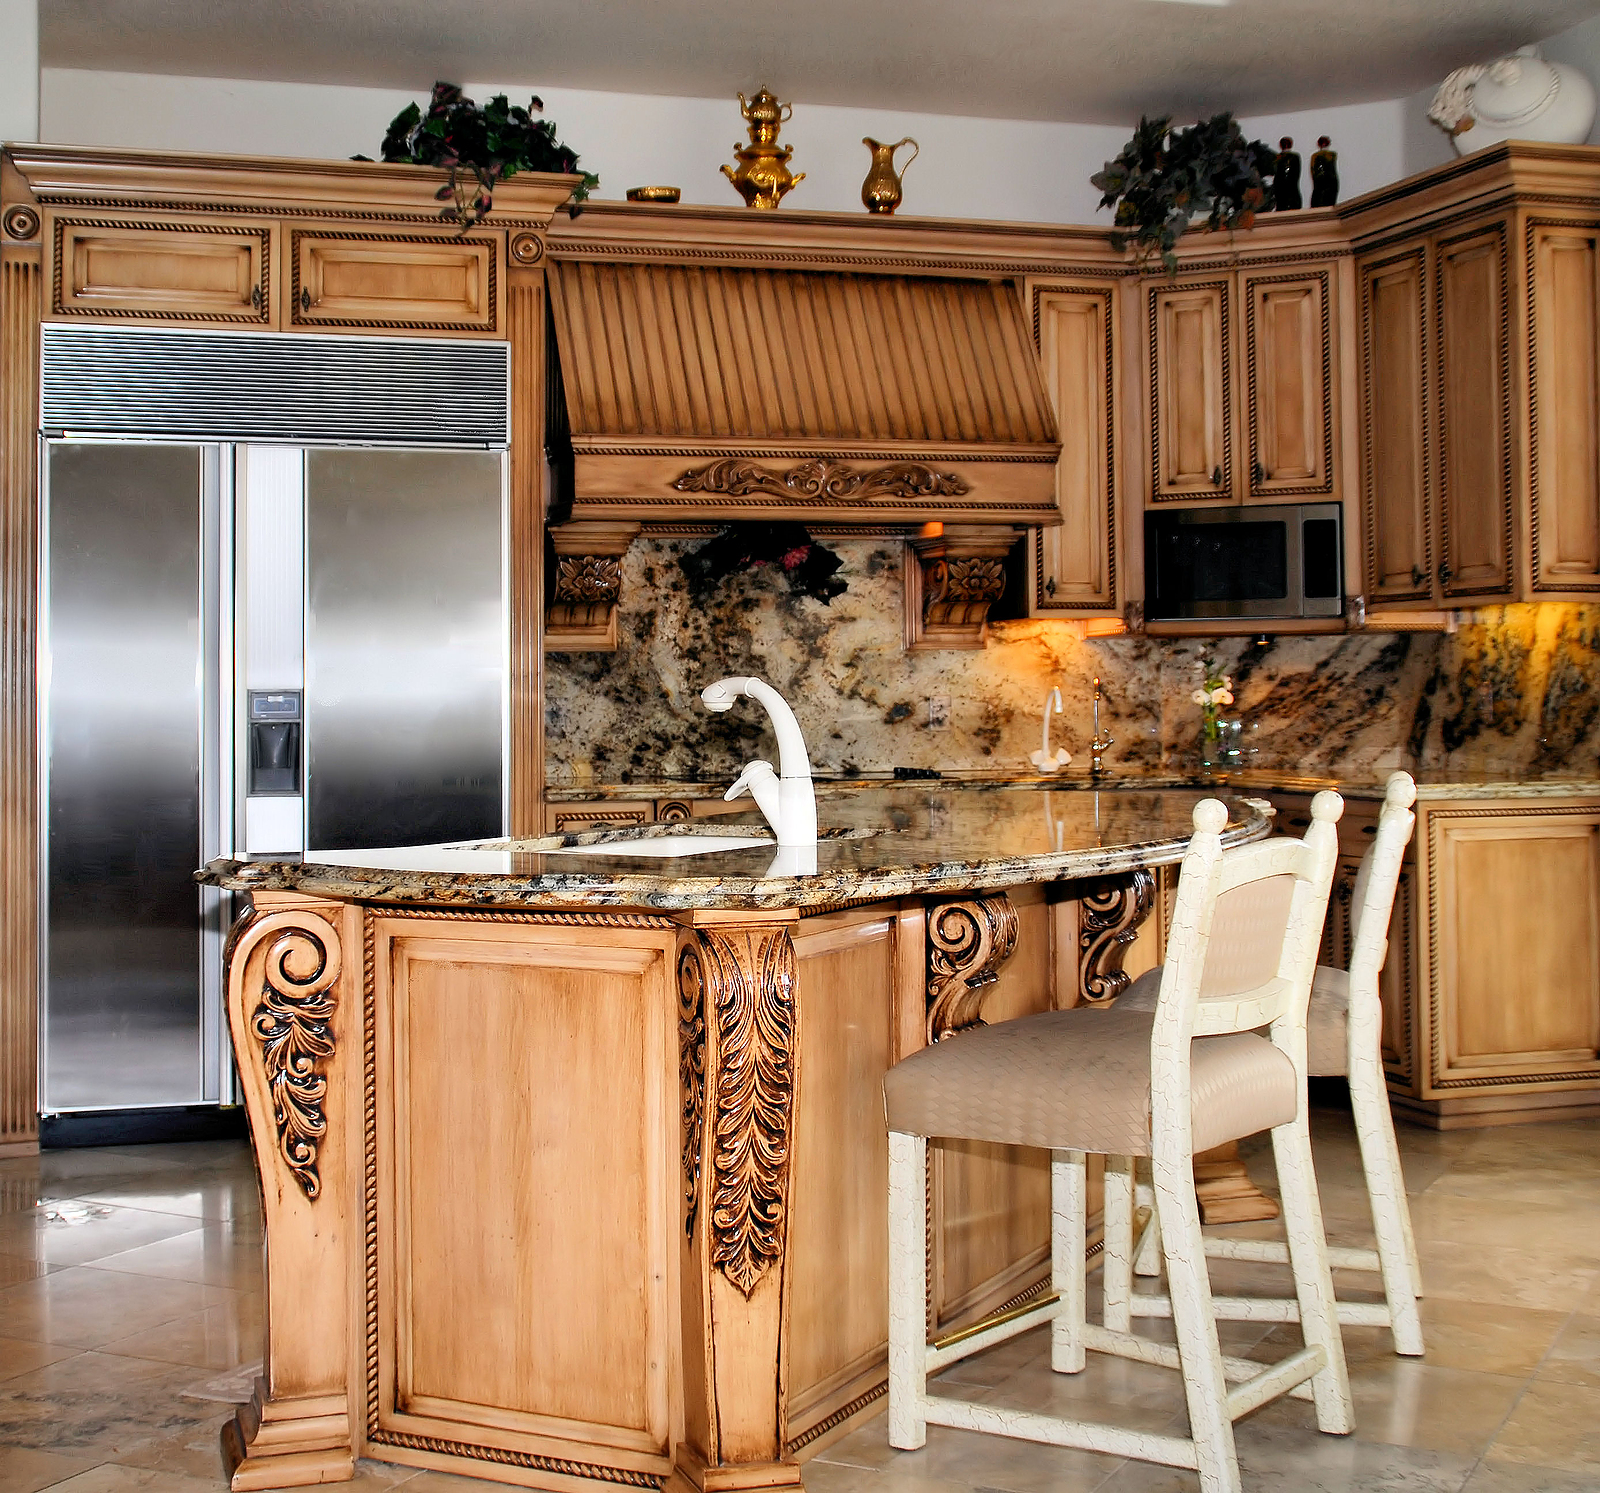 Donco designs is a pompano beach remodeling contractor for Kitchen remodel design ideas